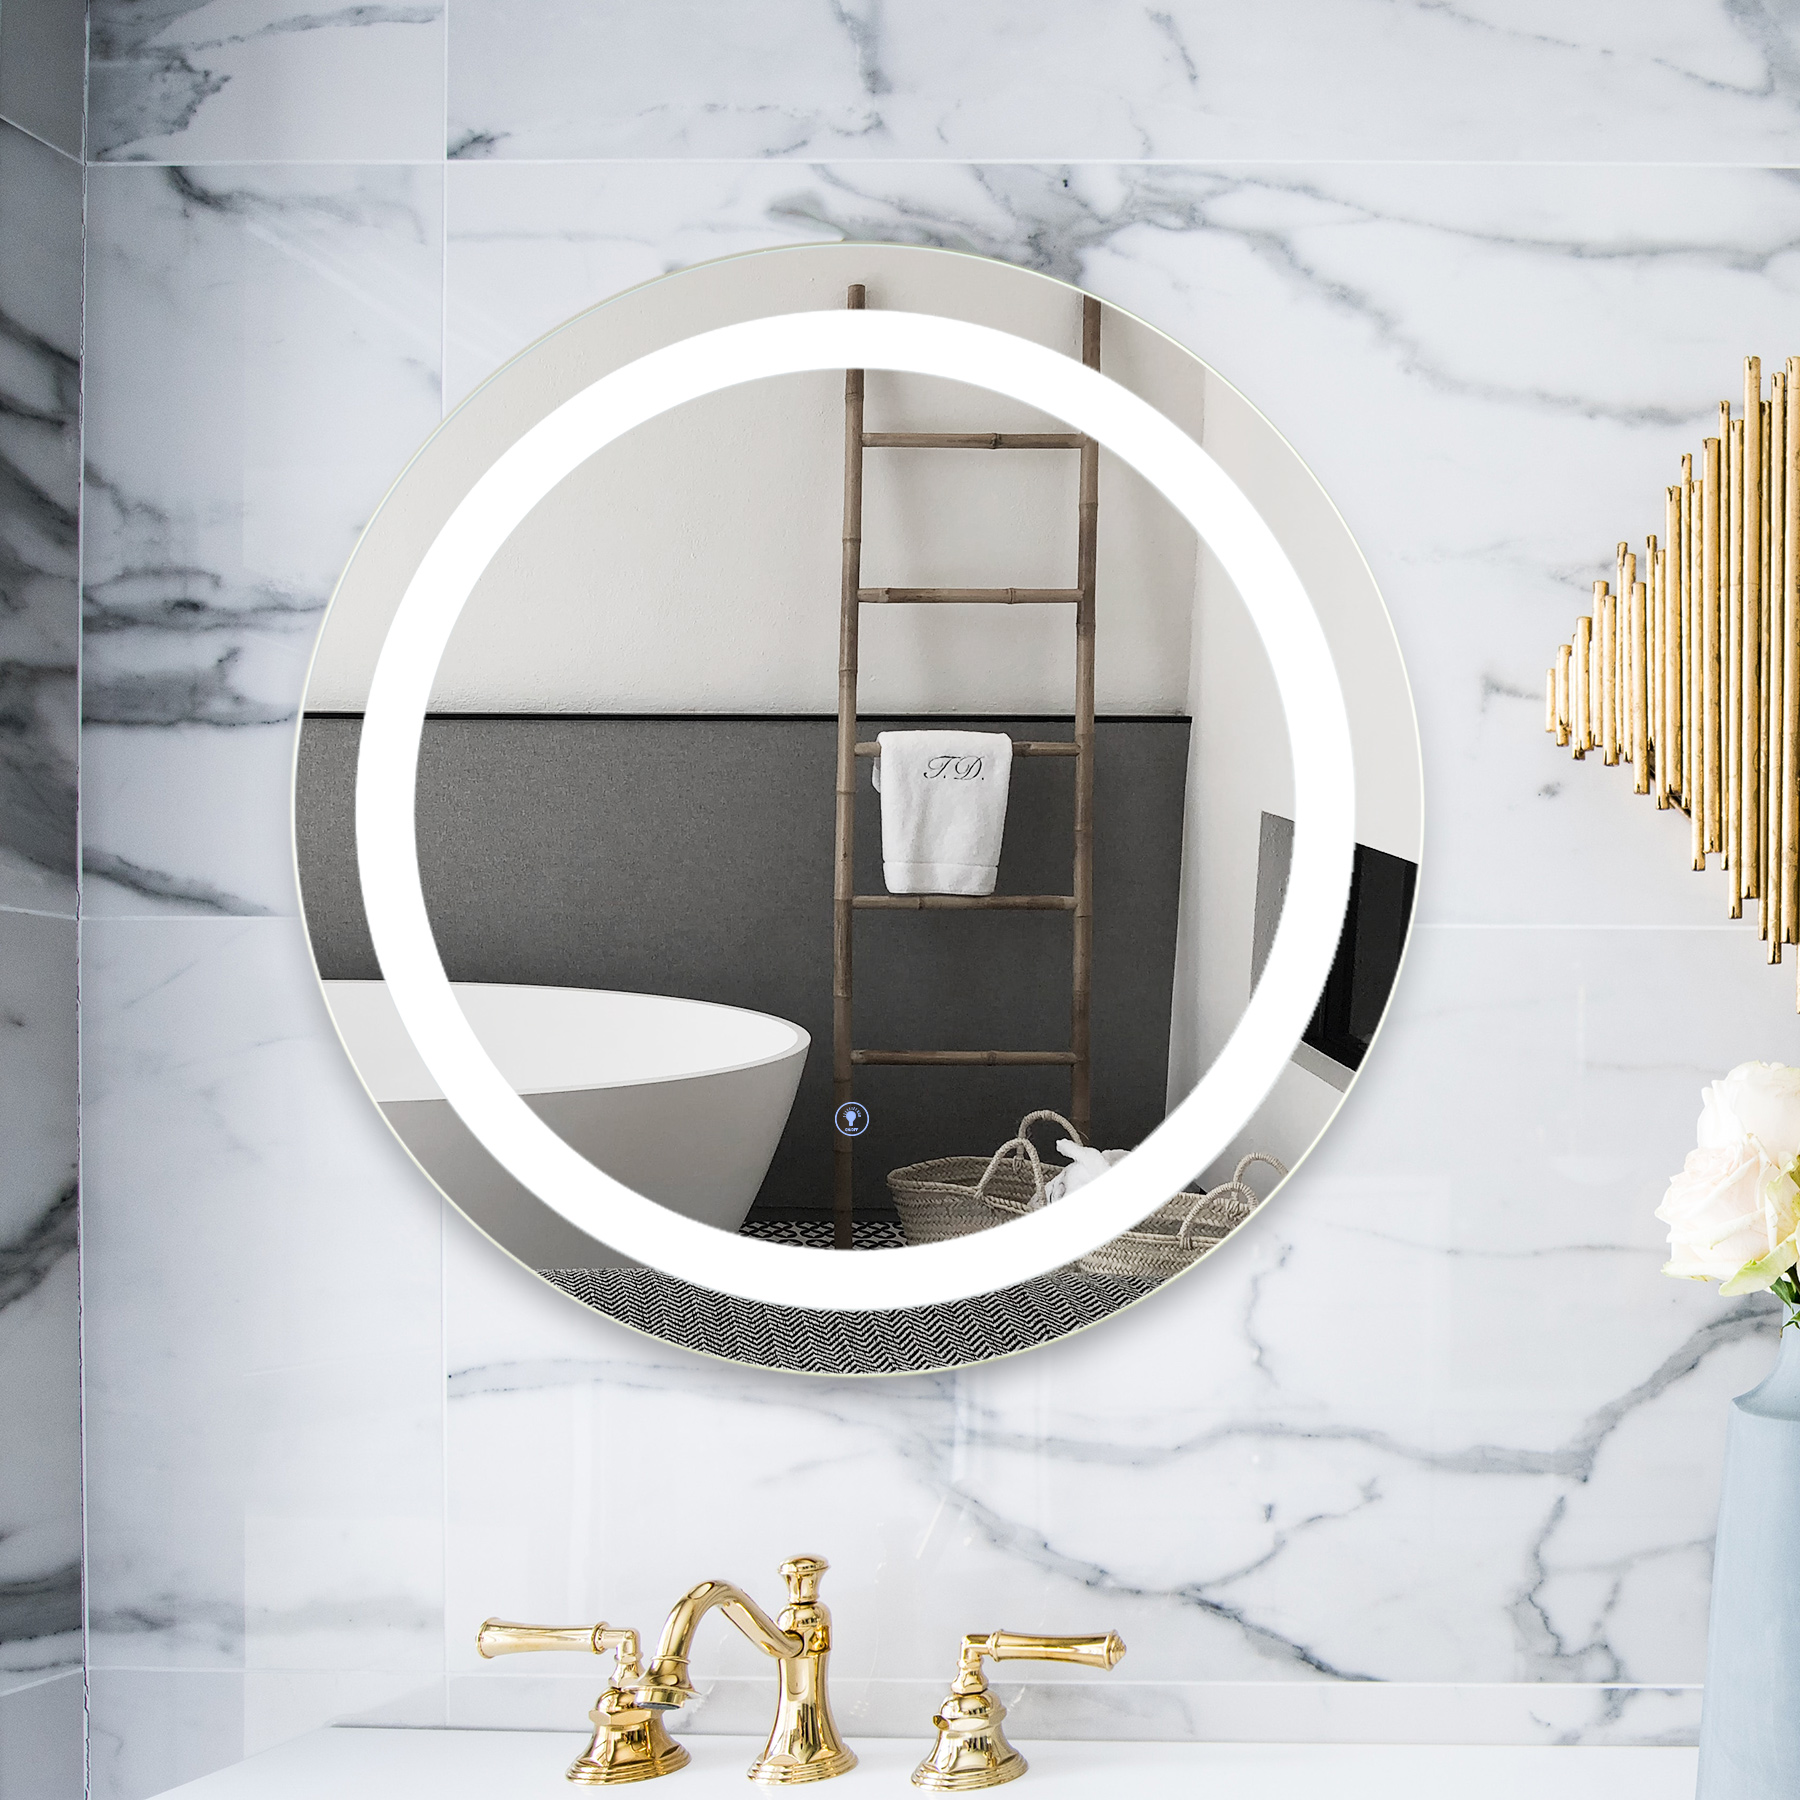 2 Silver Round Wall Mounted Led Mirror For Bedroom Desk Bathroom Vanity And More Glass Aluminum Alloy Metal Walmart Com Walmart Com